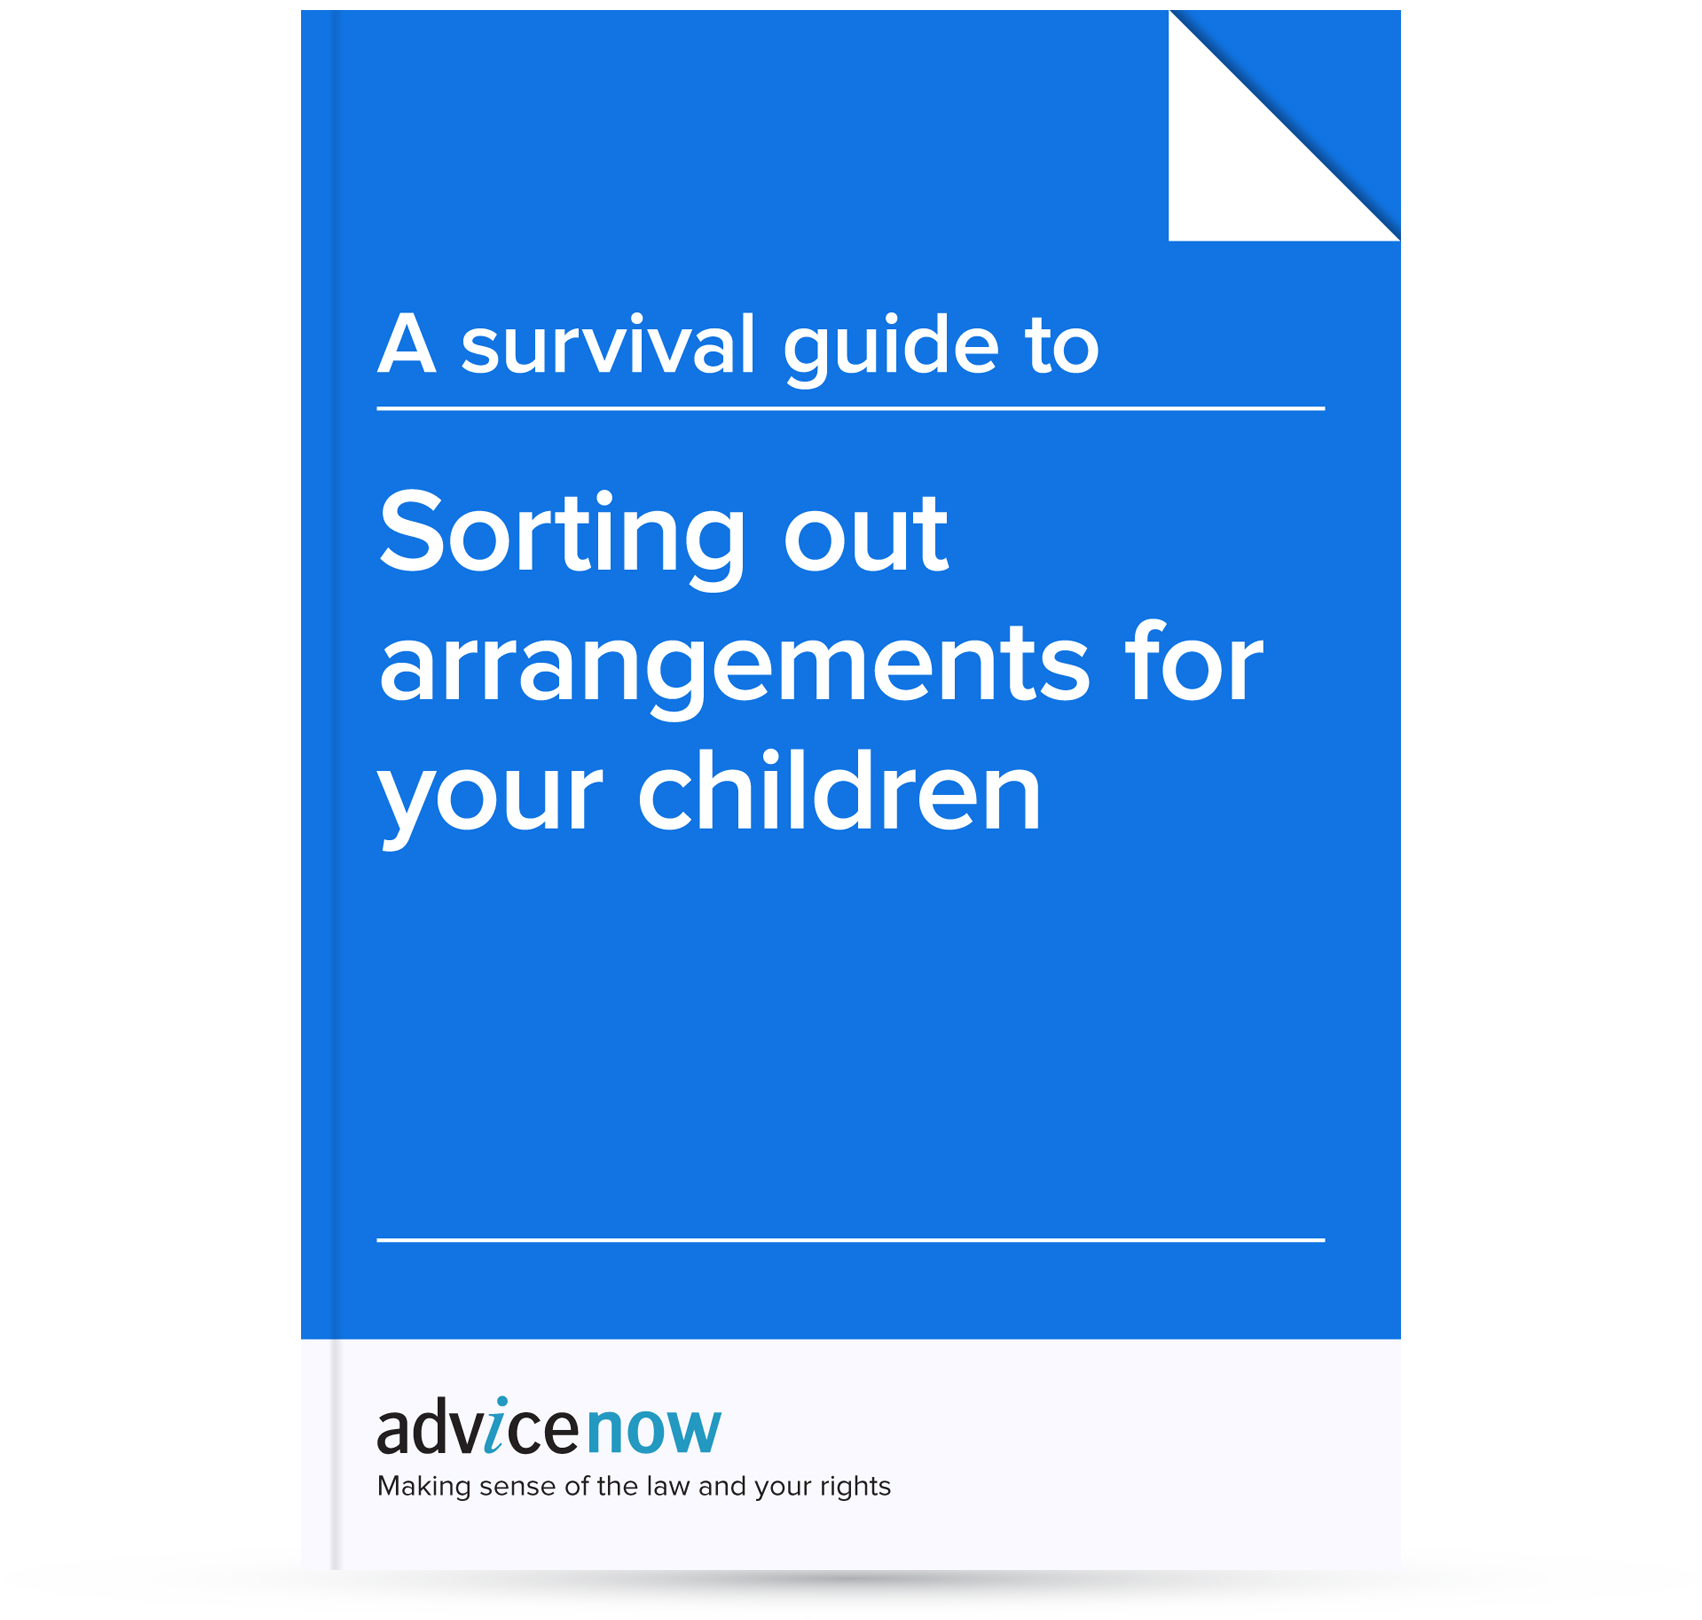 A survival guide to sorting out arrangements for your children